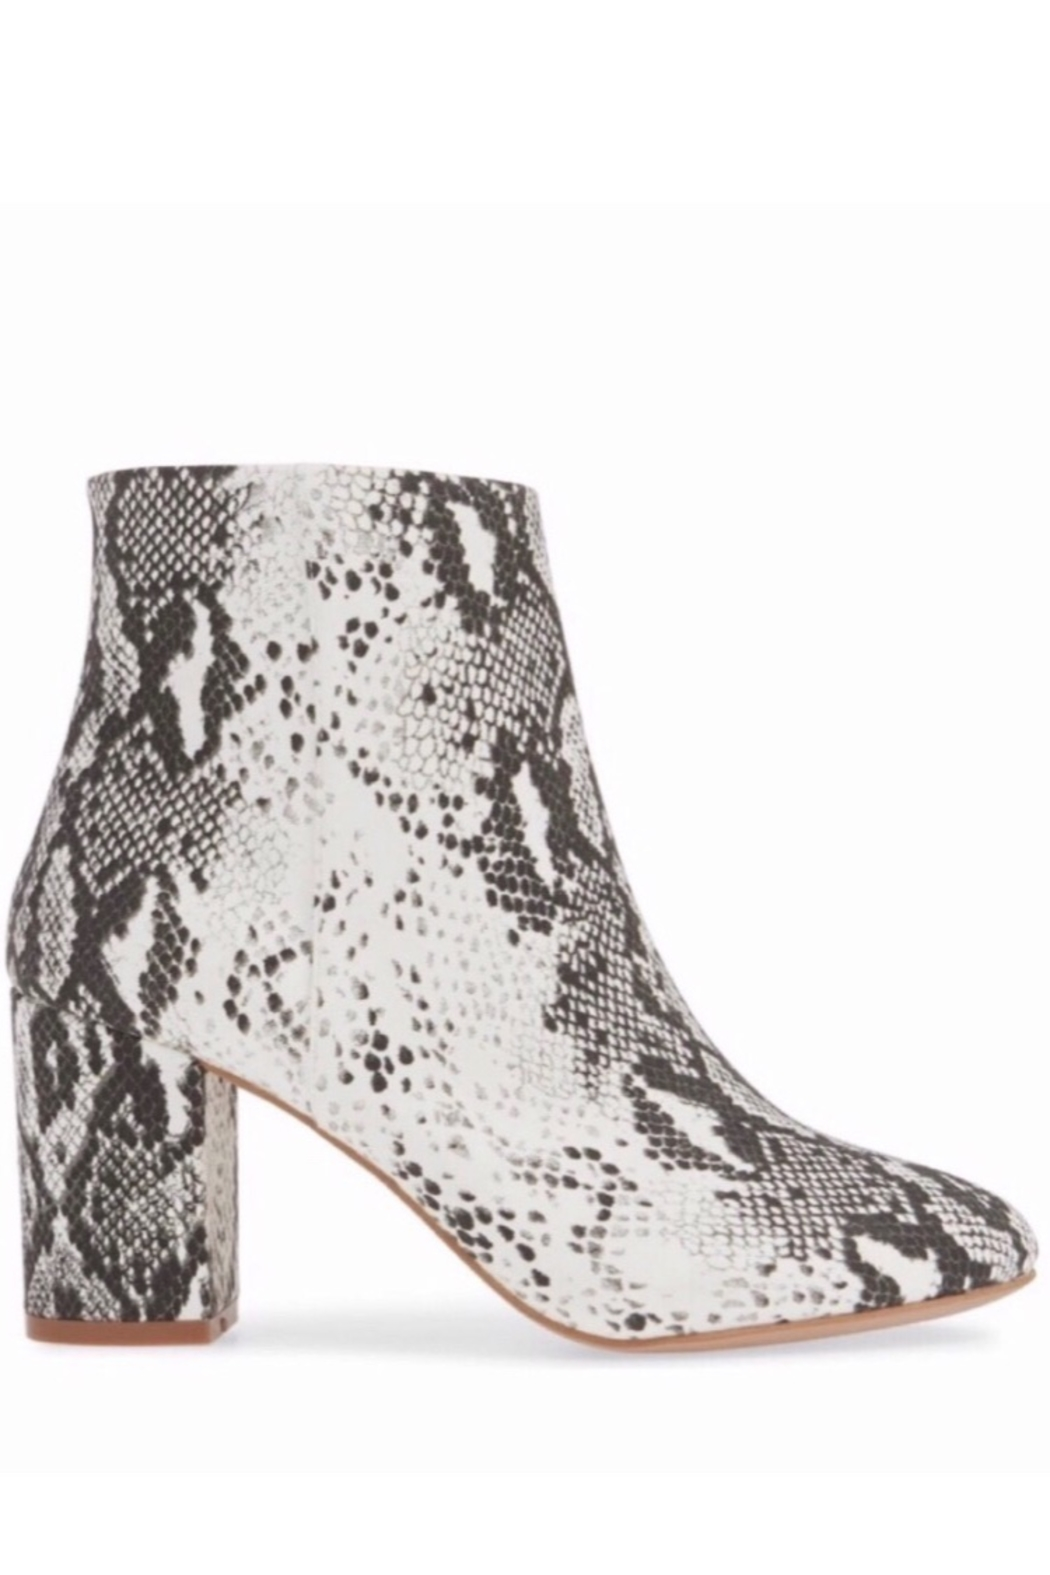 Band Of Gypsies Micro Suede Snake Print Vegan Booties - Front Full Image